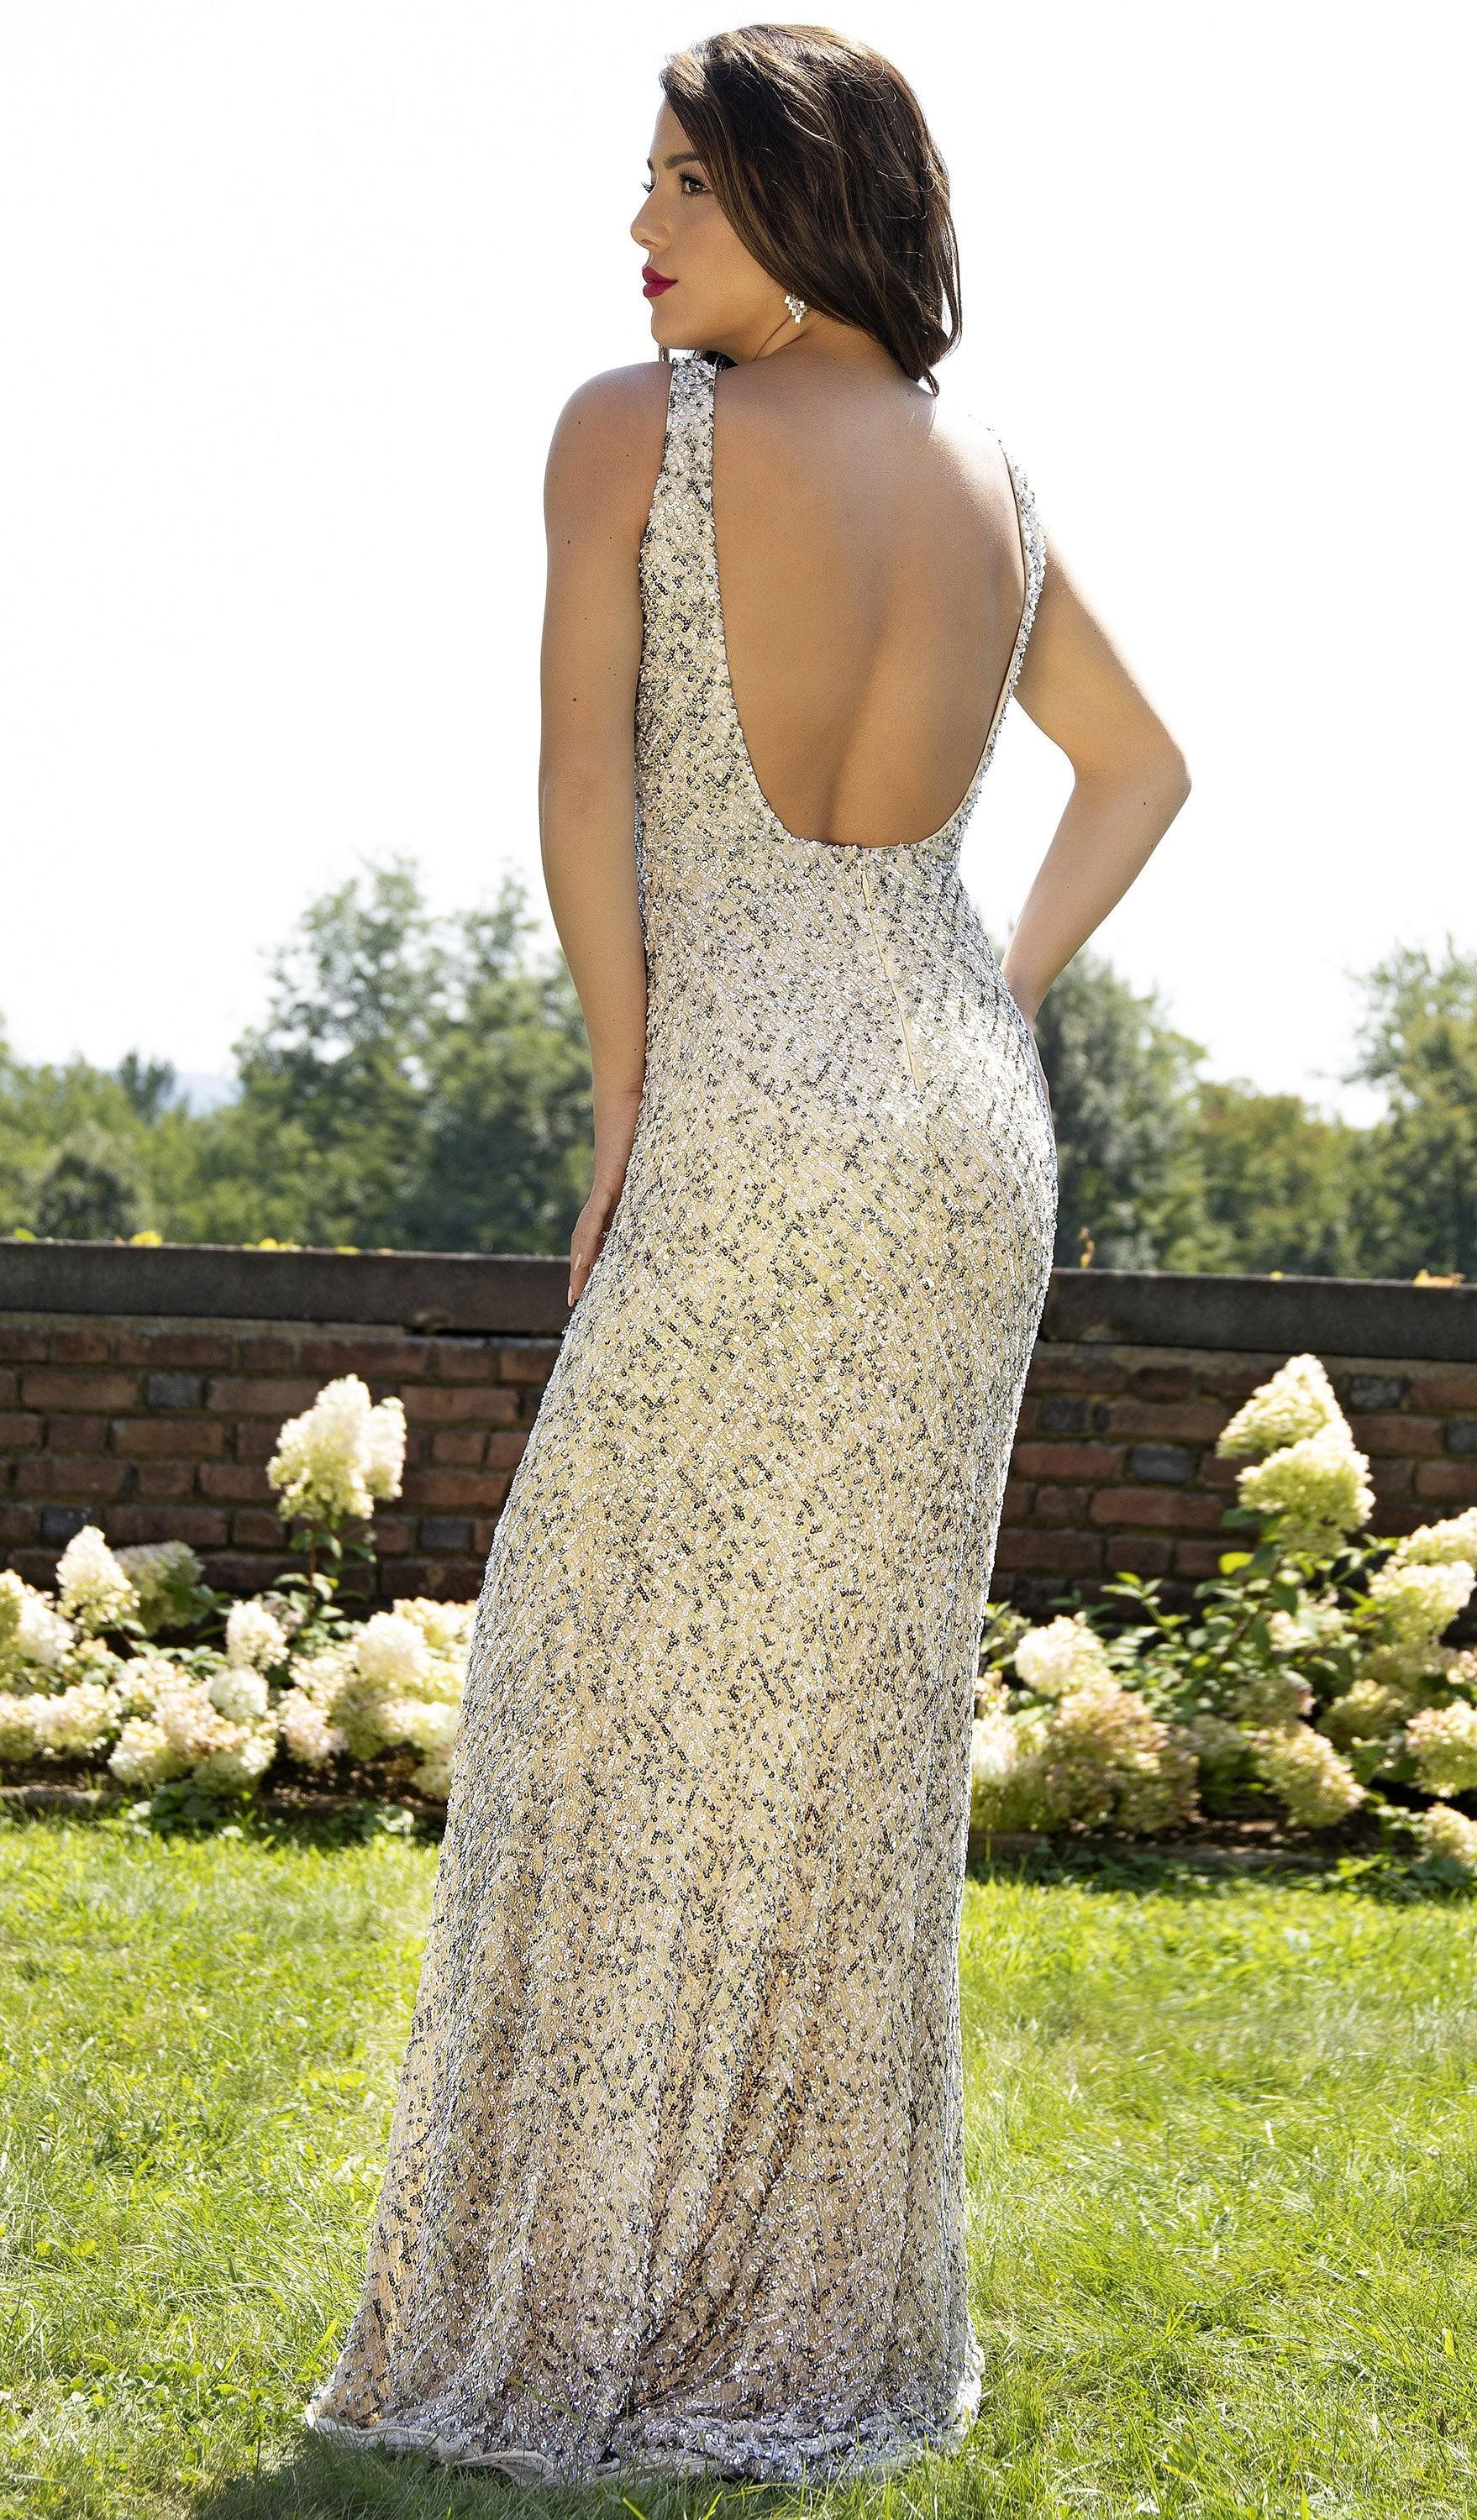 Primavera Couture - 3205 Sequin Embellished Plunging V Neck Gown In White